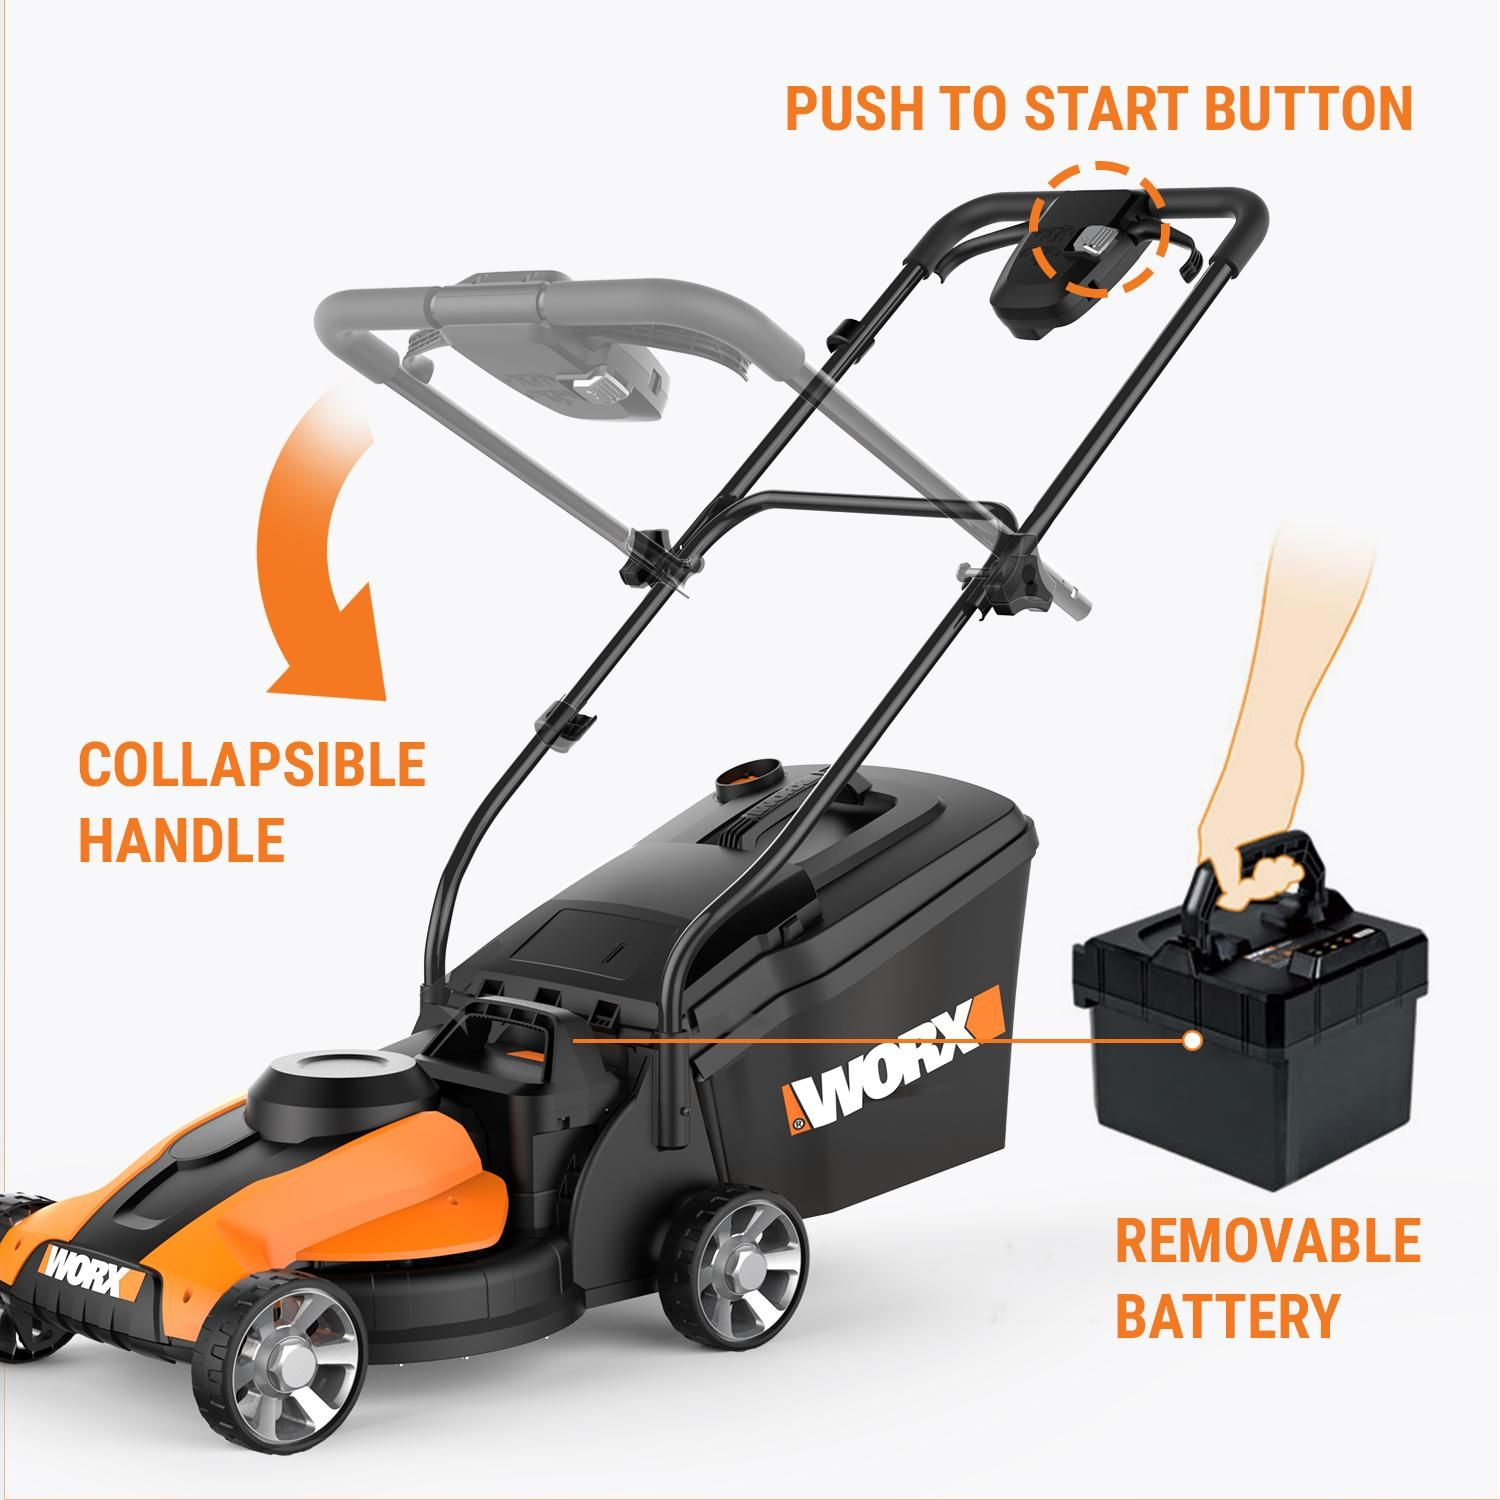 Worx 14 Inch 24 Volt Cordless Lawn Mower With Easy Start Feature